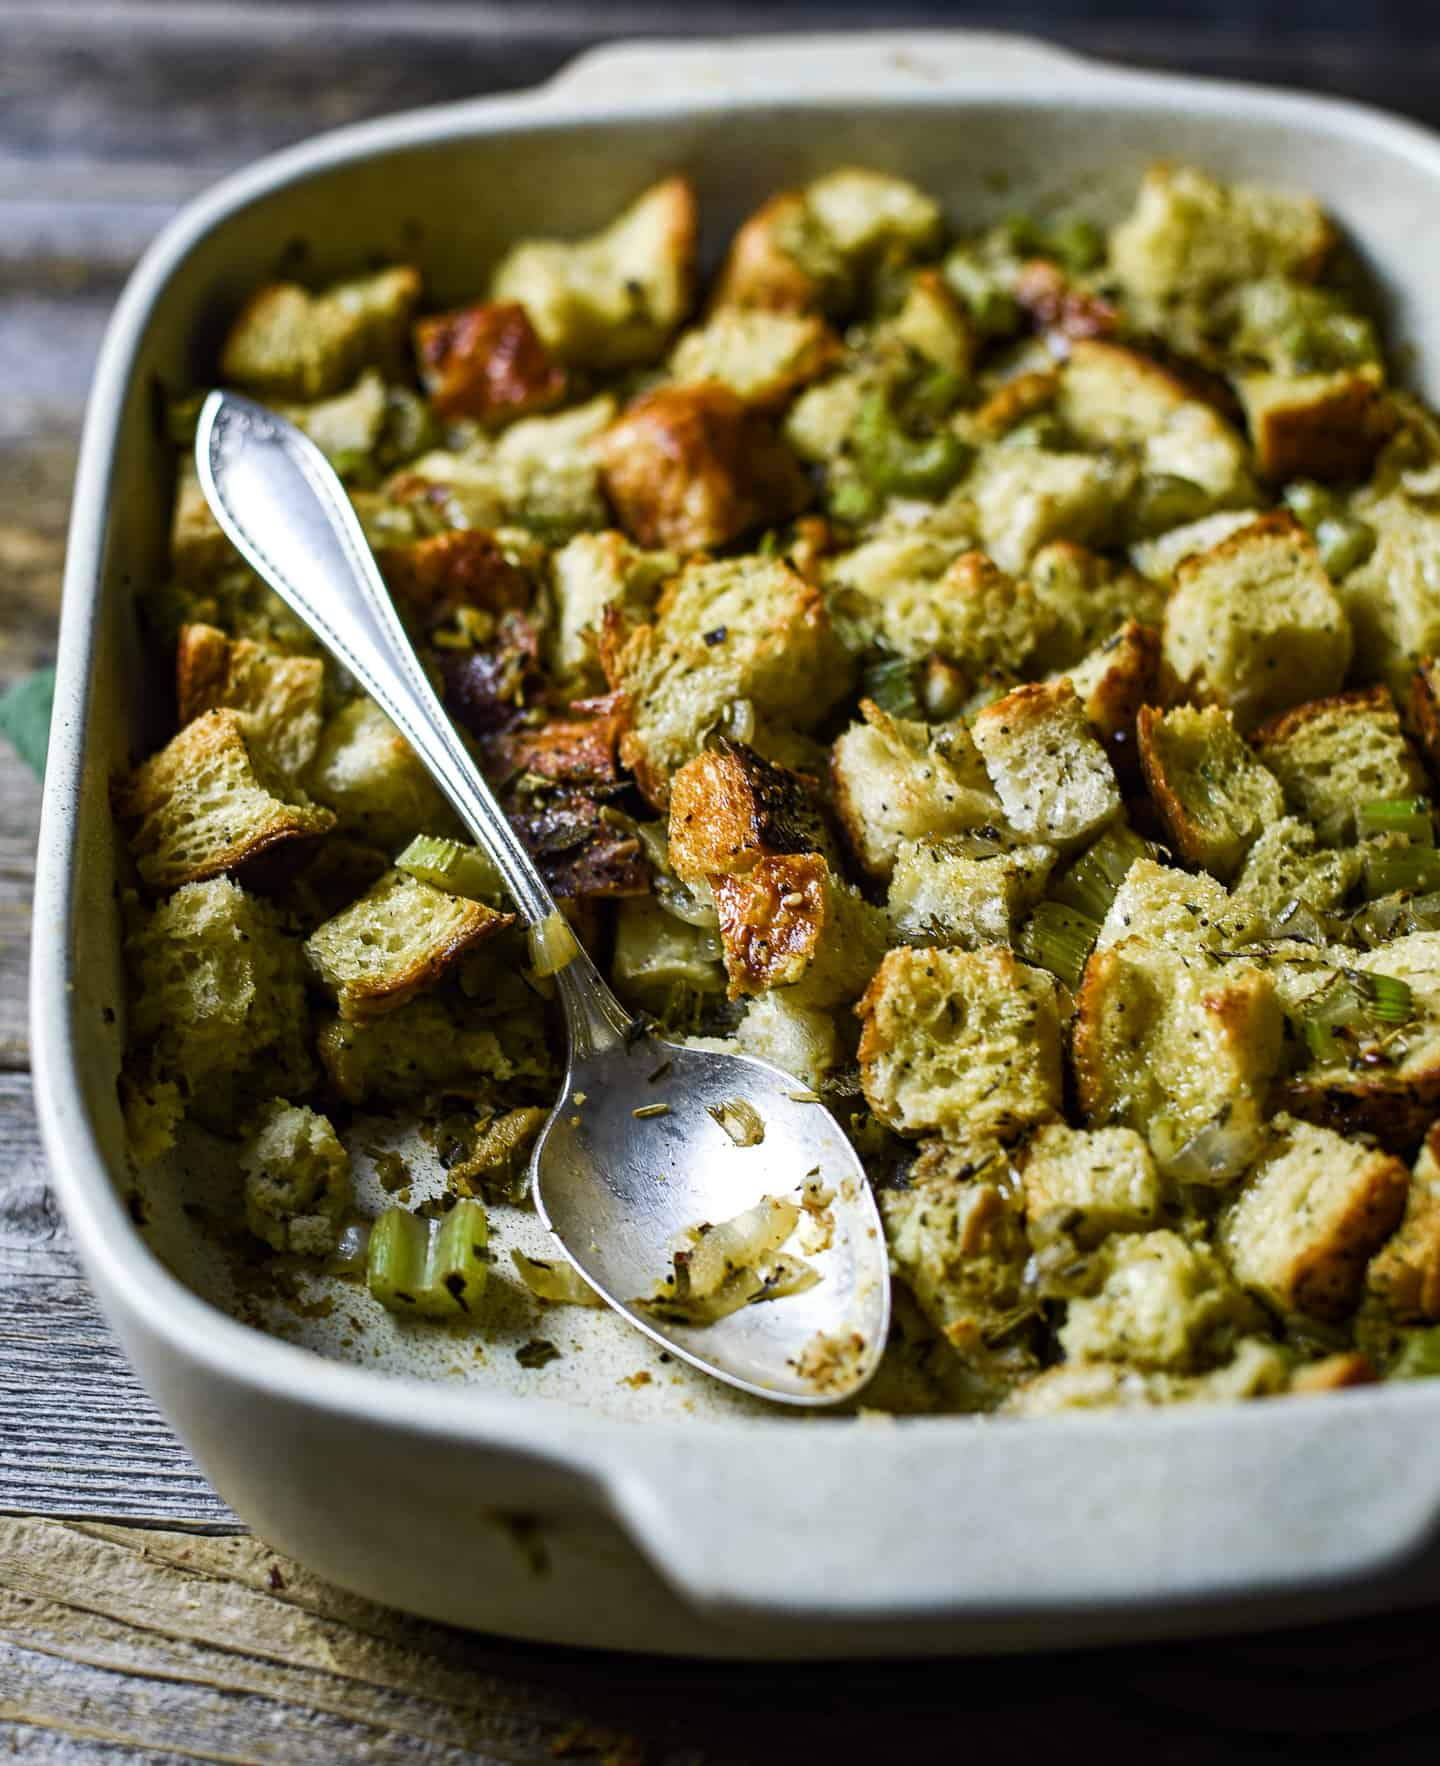 Spoon and vegan stuffing in baking dish.